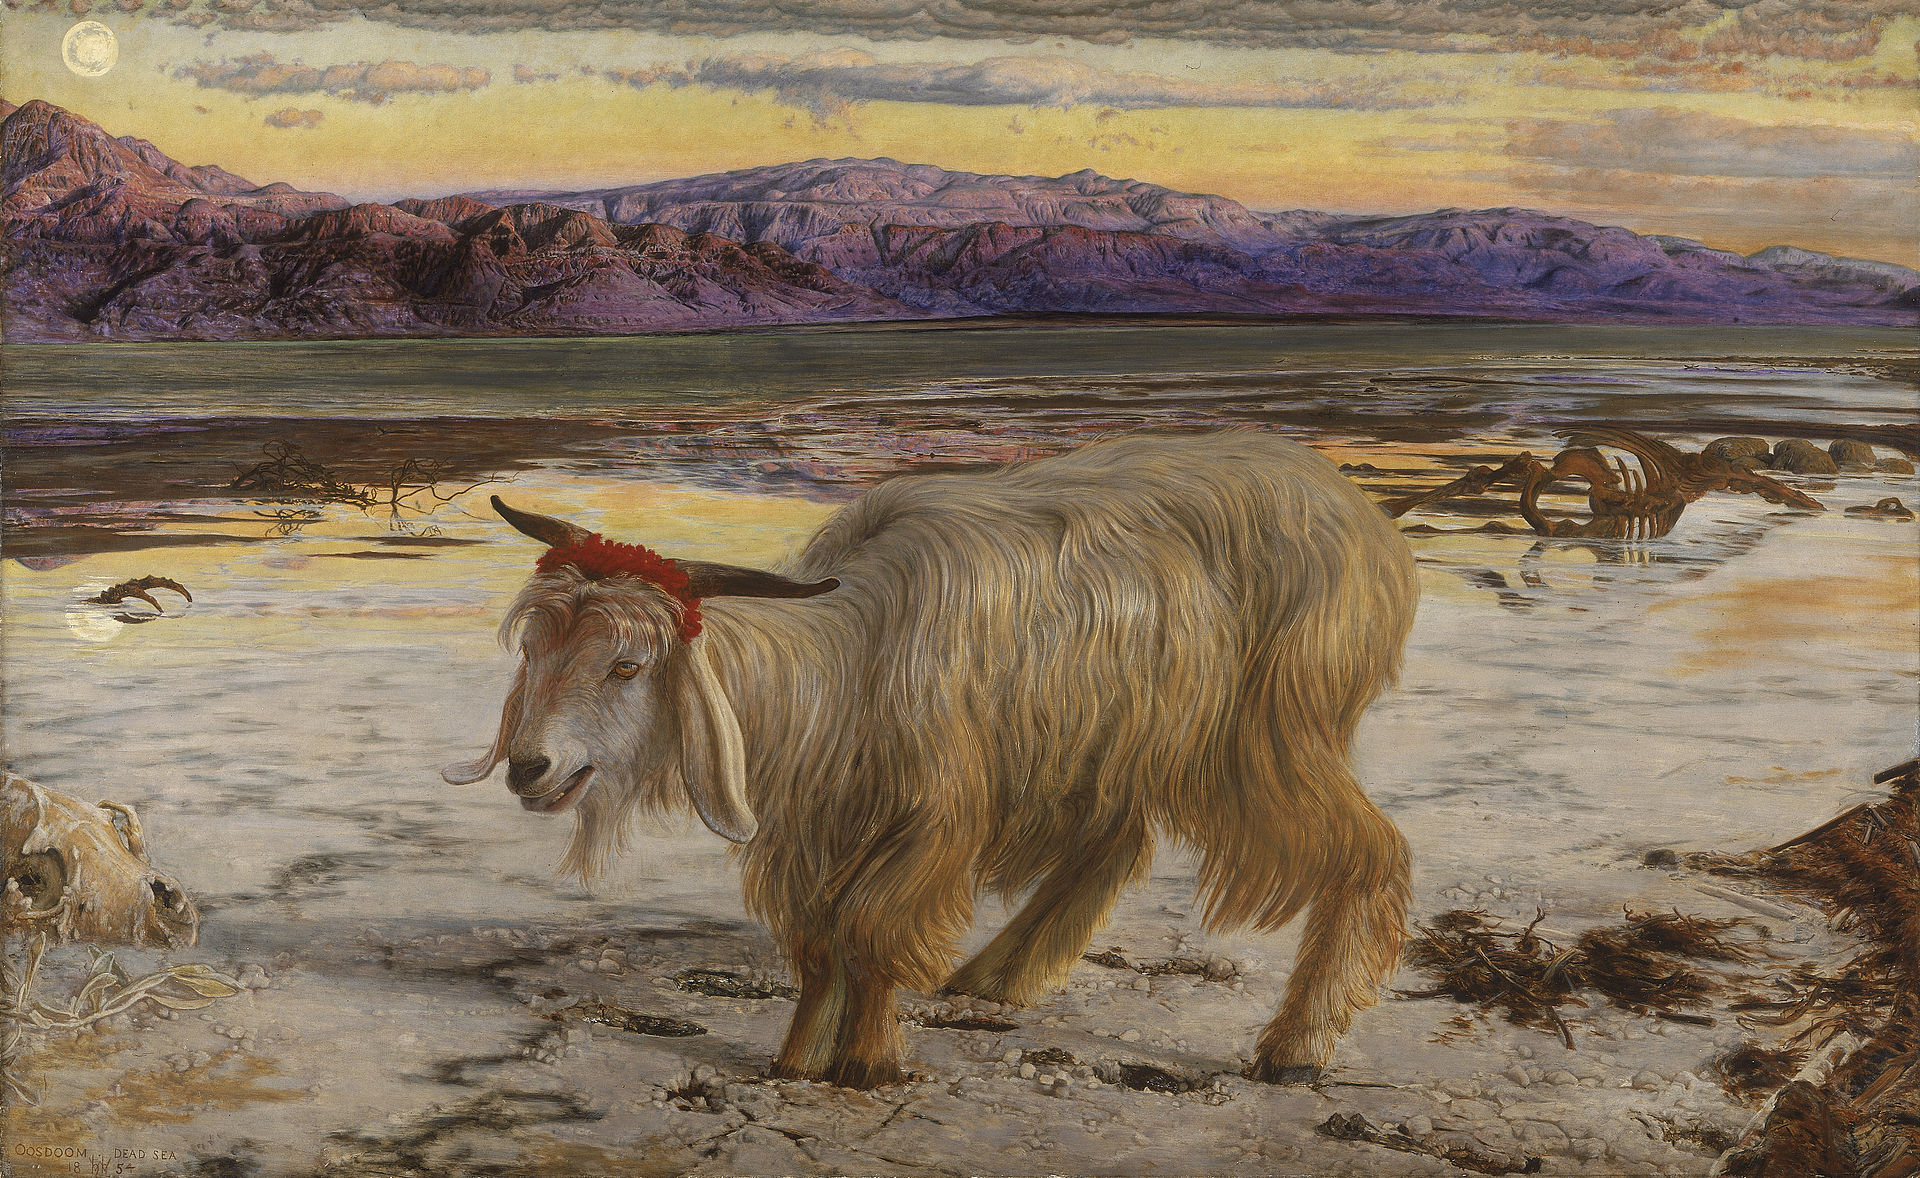 The Scapegoat by William Holman Hunt, 1854.